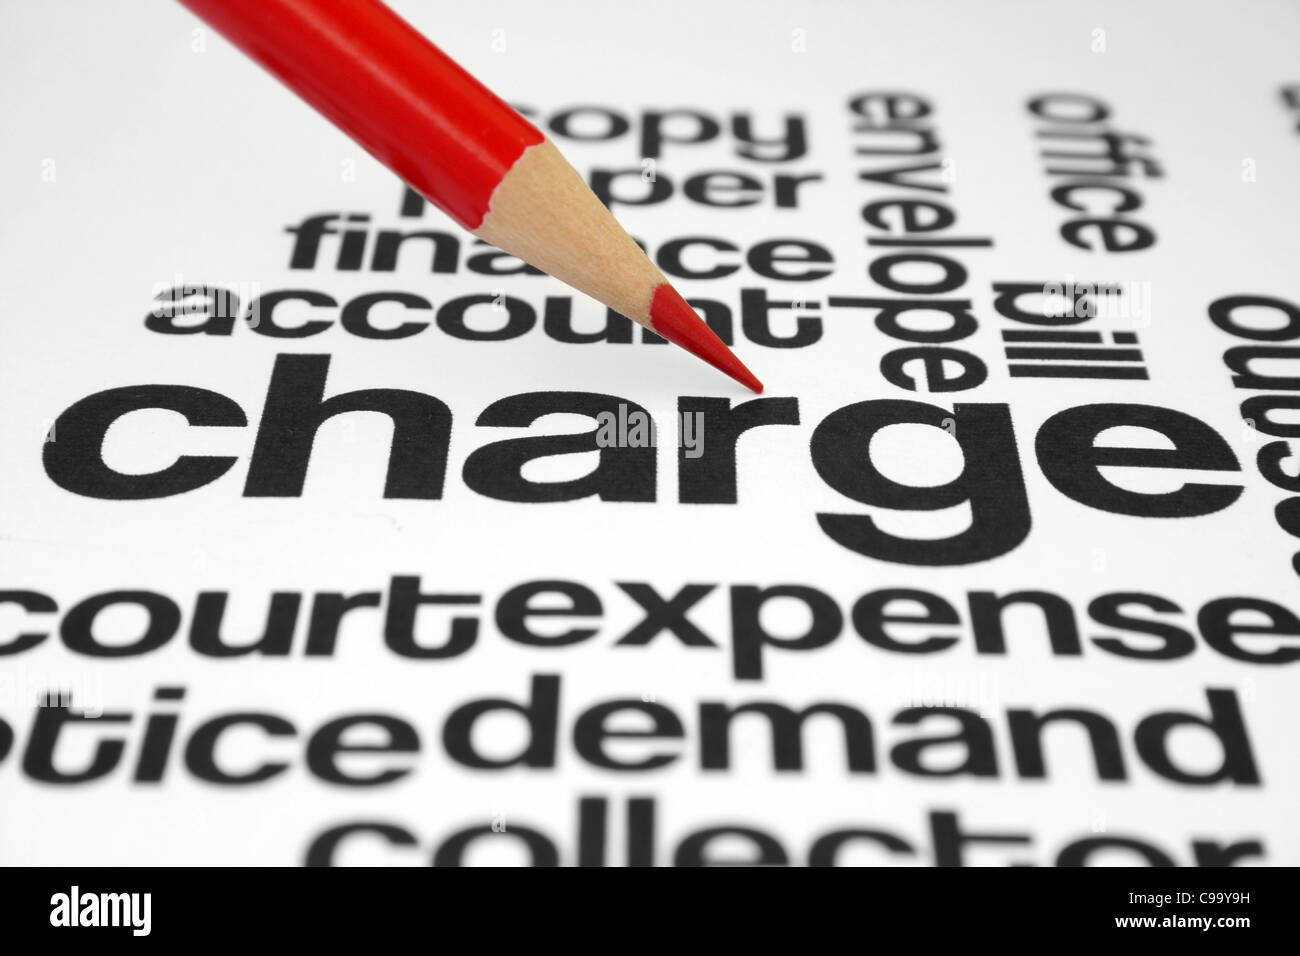 Charge - Stock Image